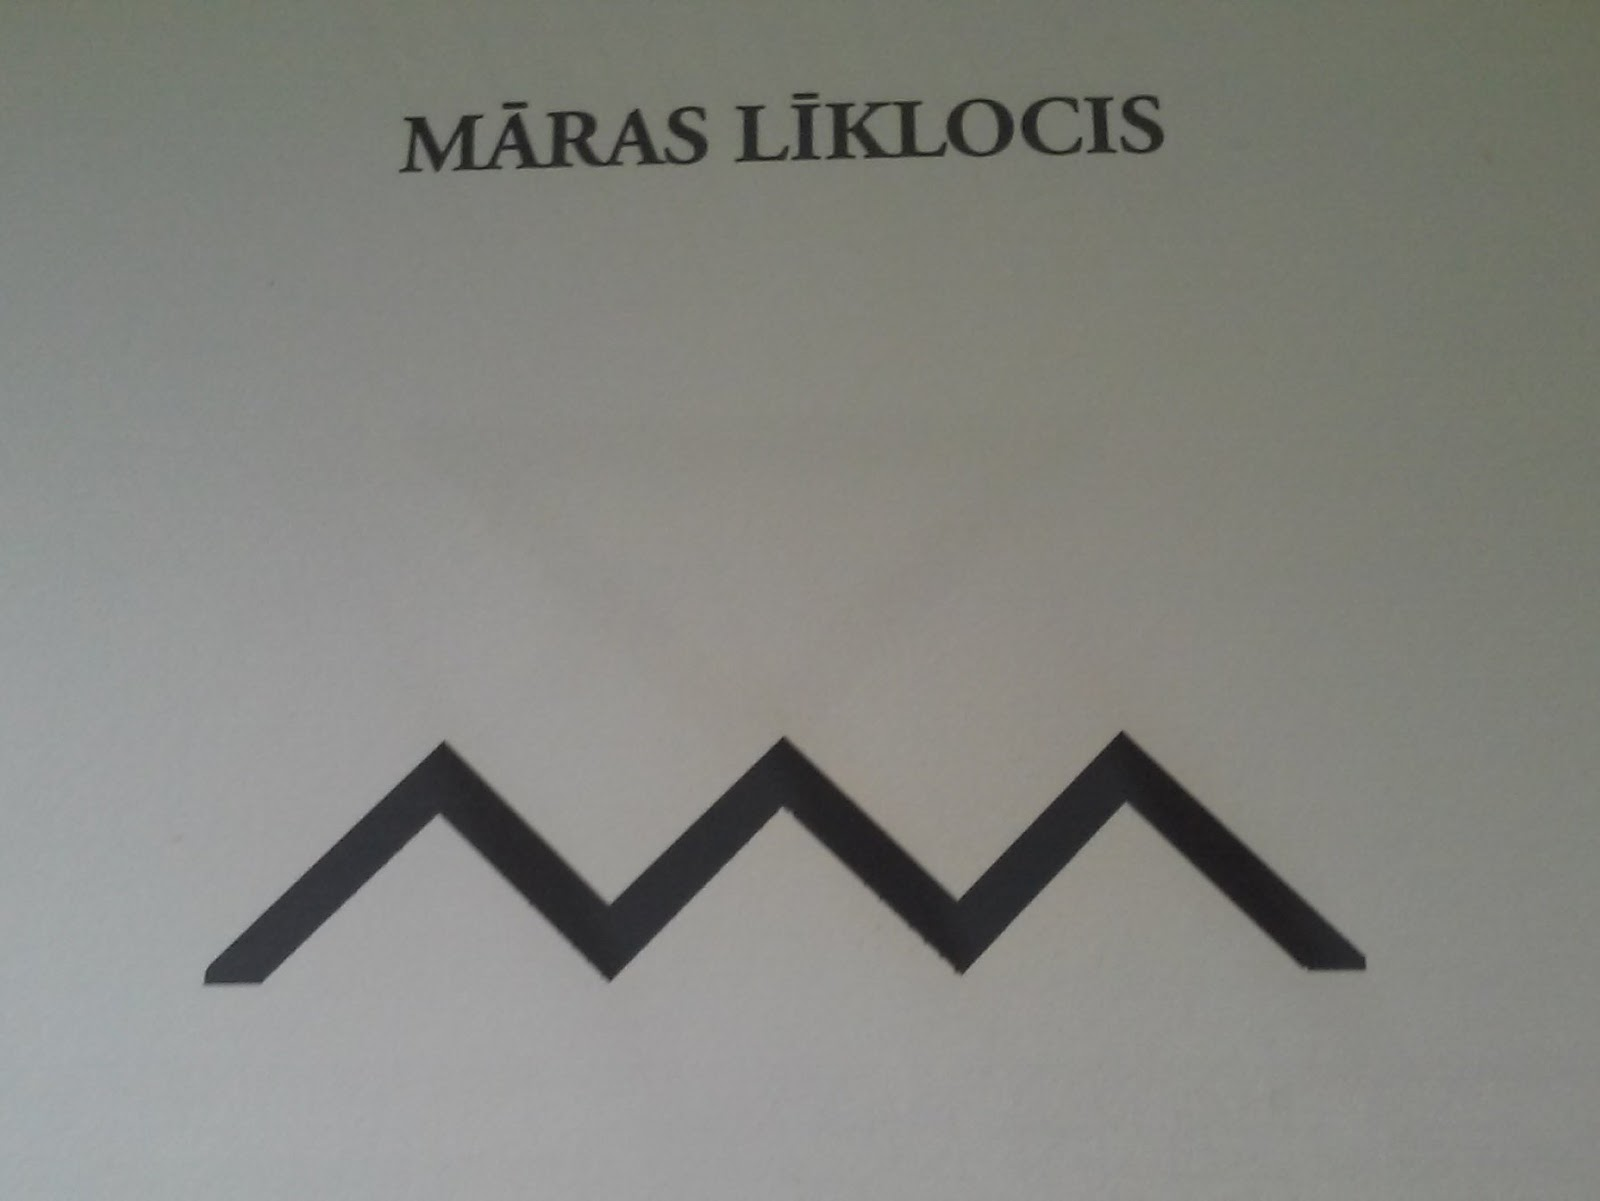 Latvian ethnographic signs anniens mara twists mras lklocis symbolising sea mother and water mother a symbol of life water is life sustainer the sign is symbolic water depict not biocorpaavc